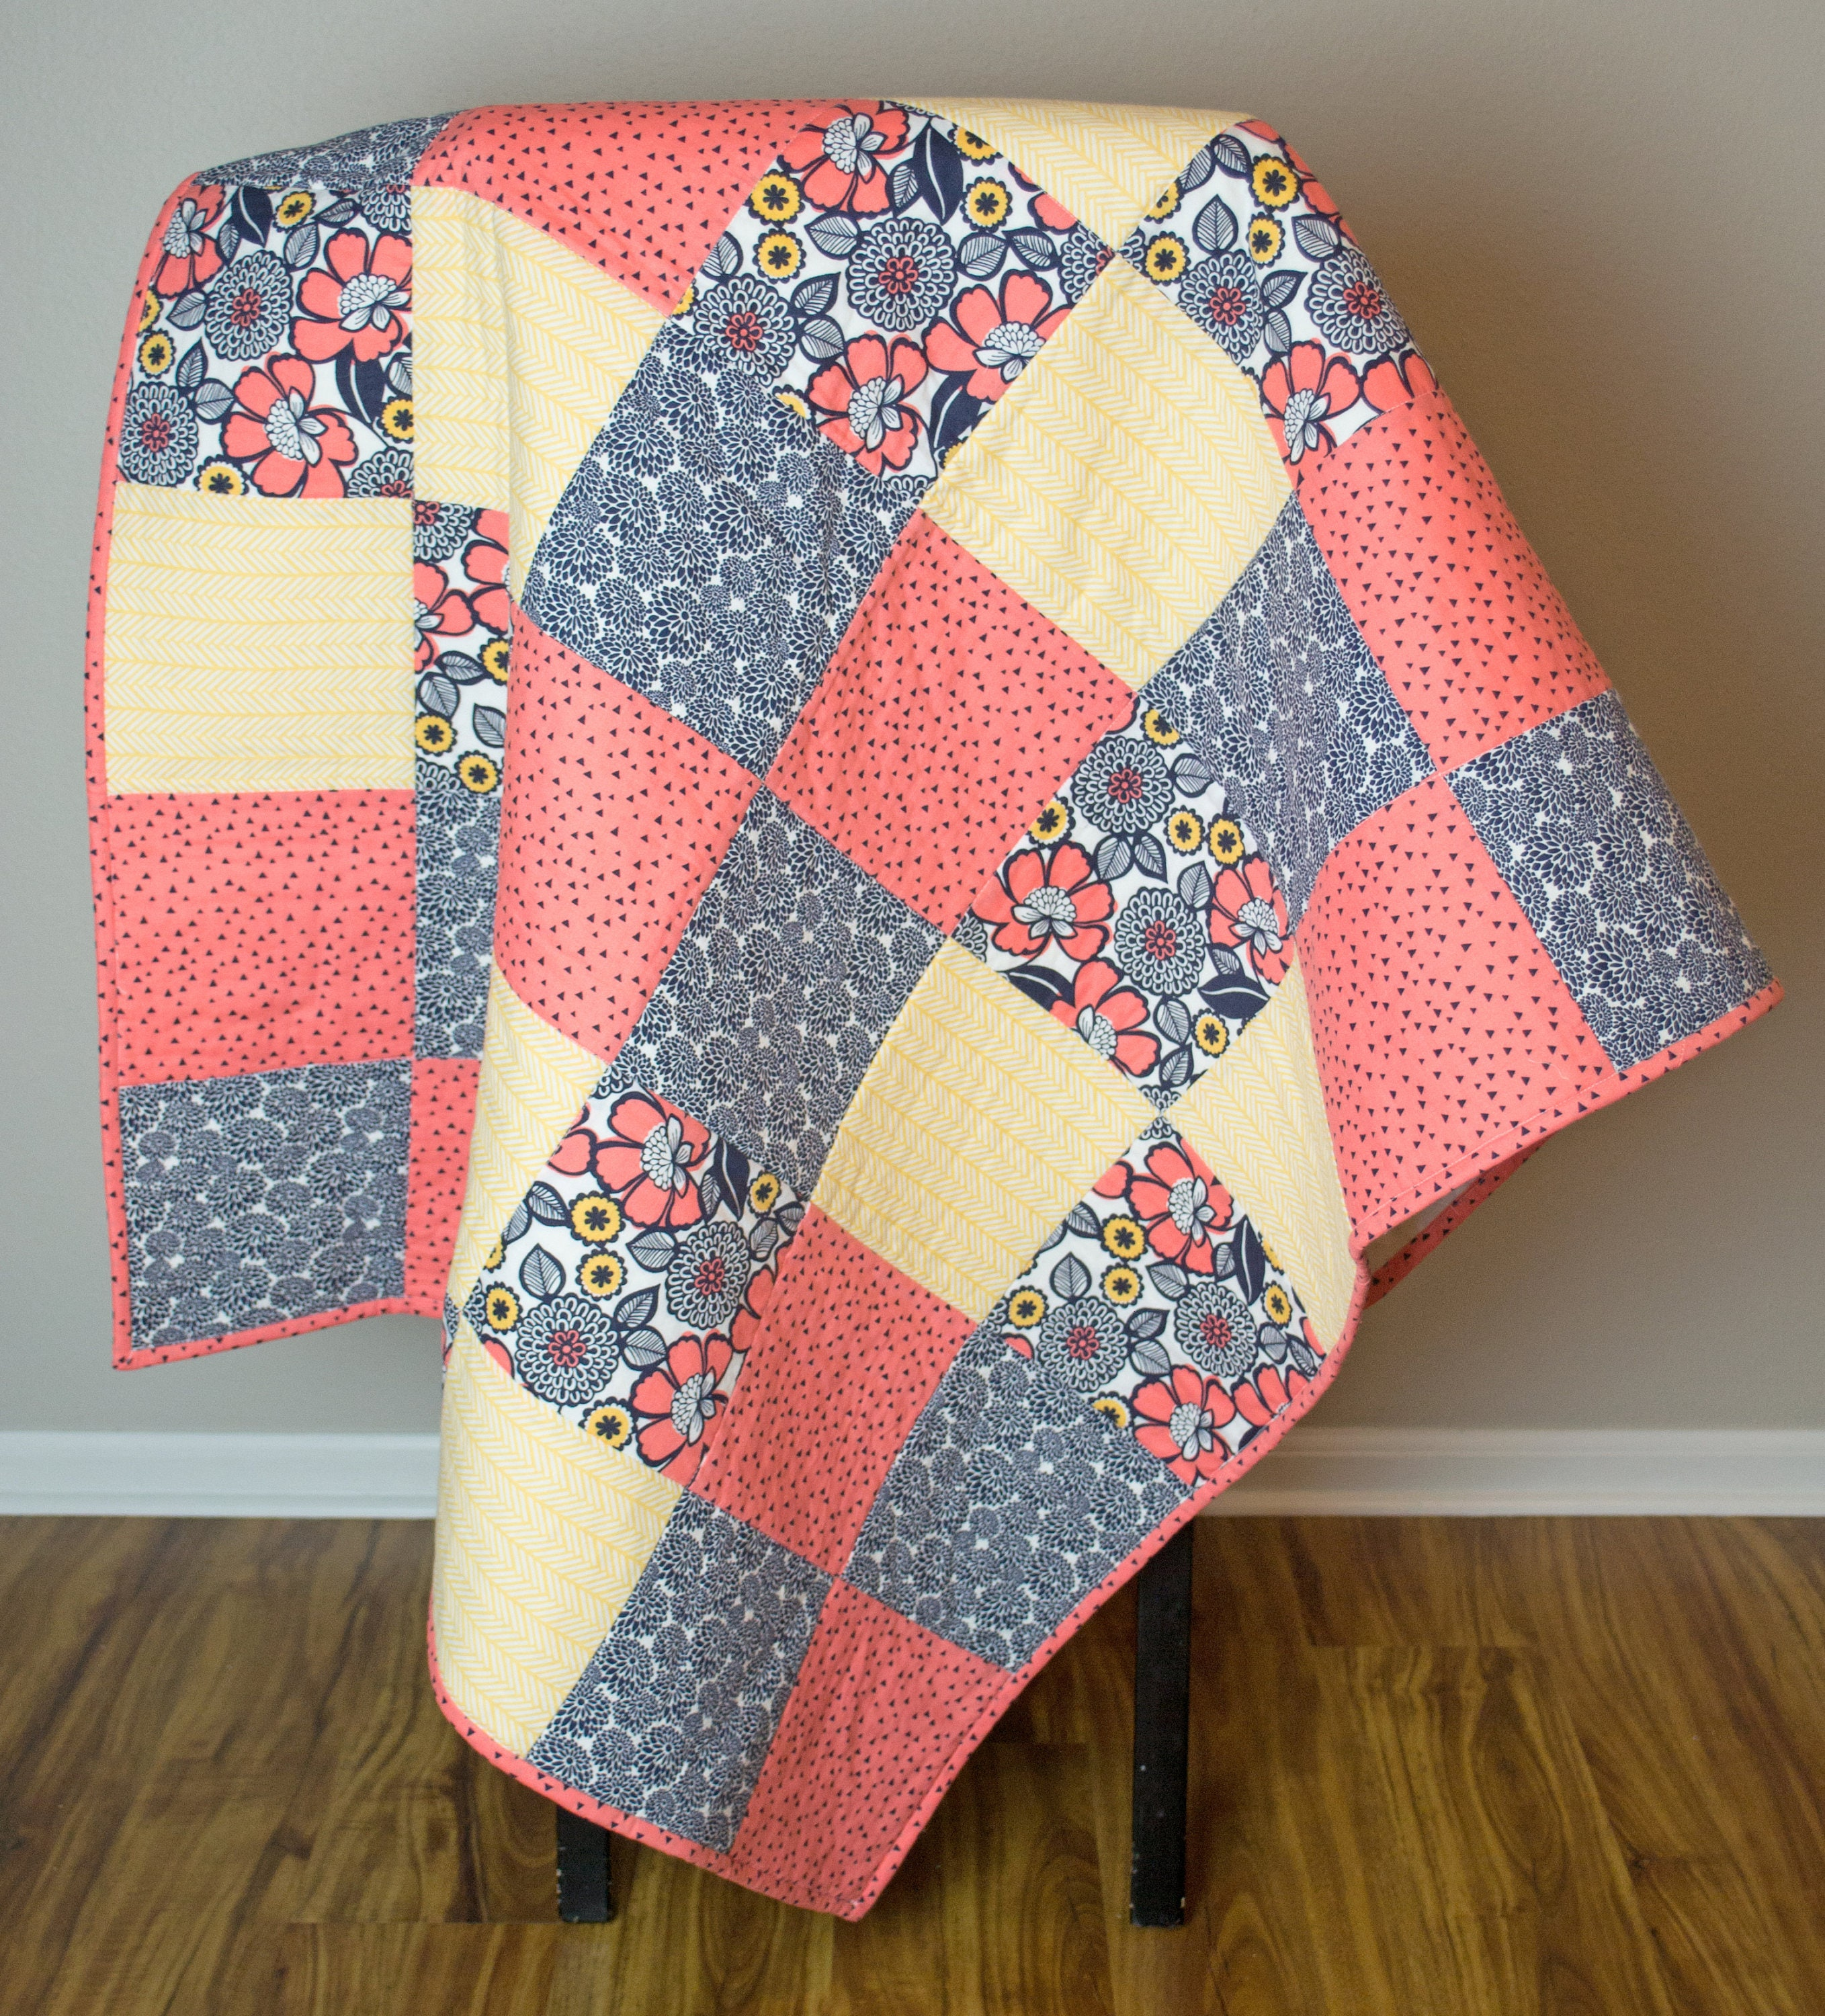 Baby Quilt. Floral Baby Quilt. Baby Quilts Handmade. Patchwork